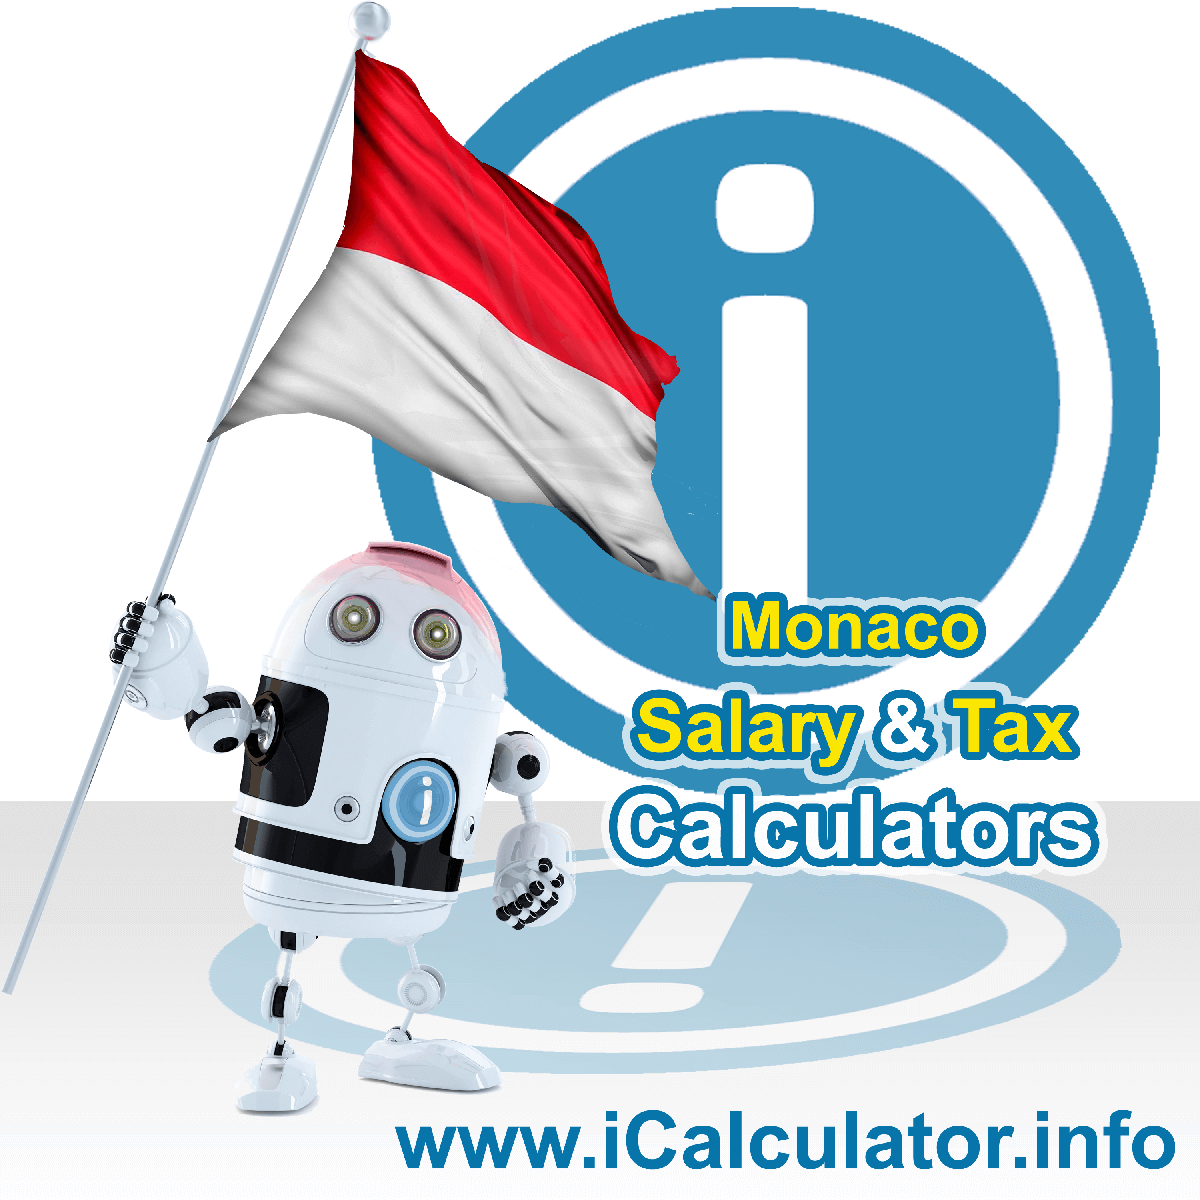 Monaco Tax Calculator. This image shows the Monaco flag and information relating to the tax formula for the Monaco Salary Calculator